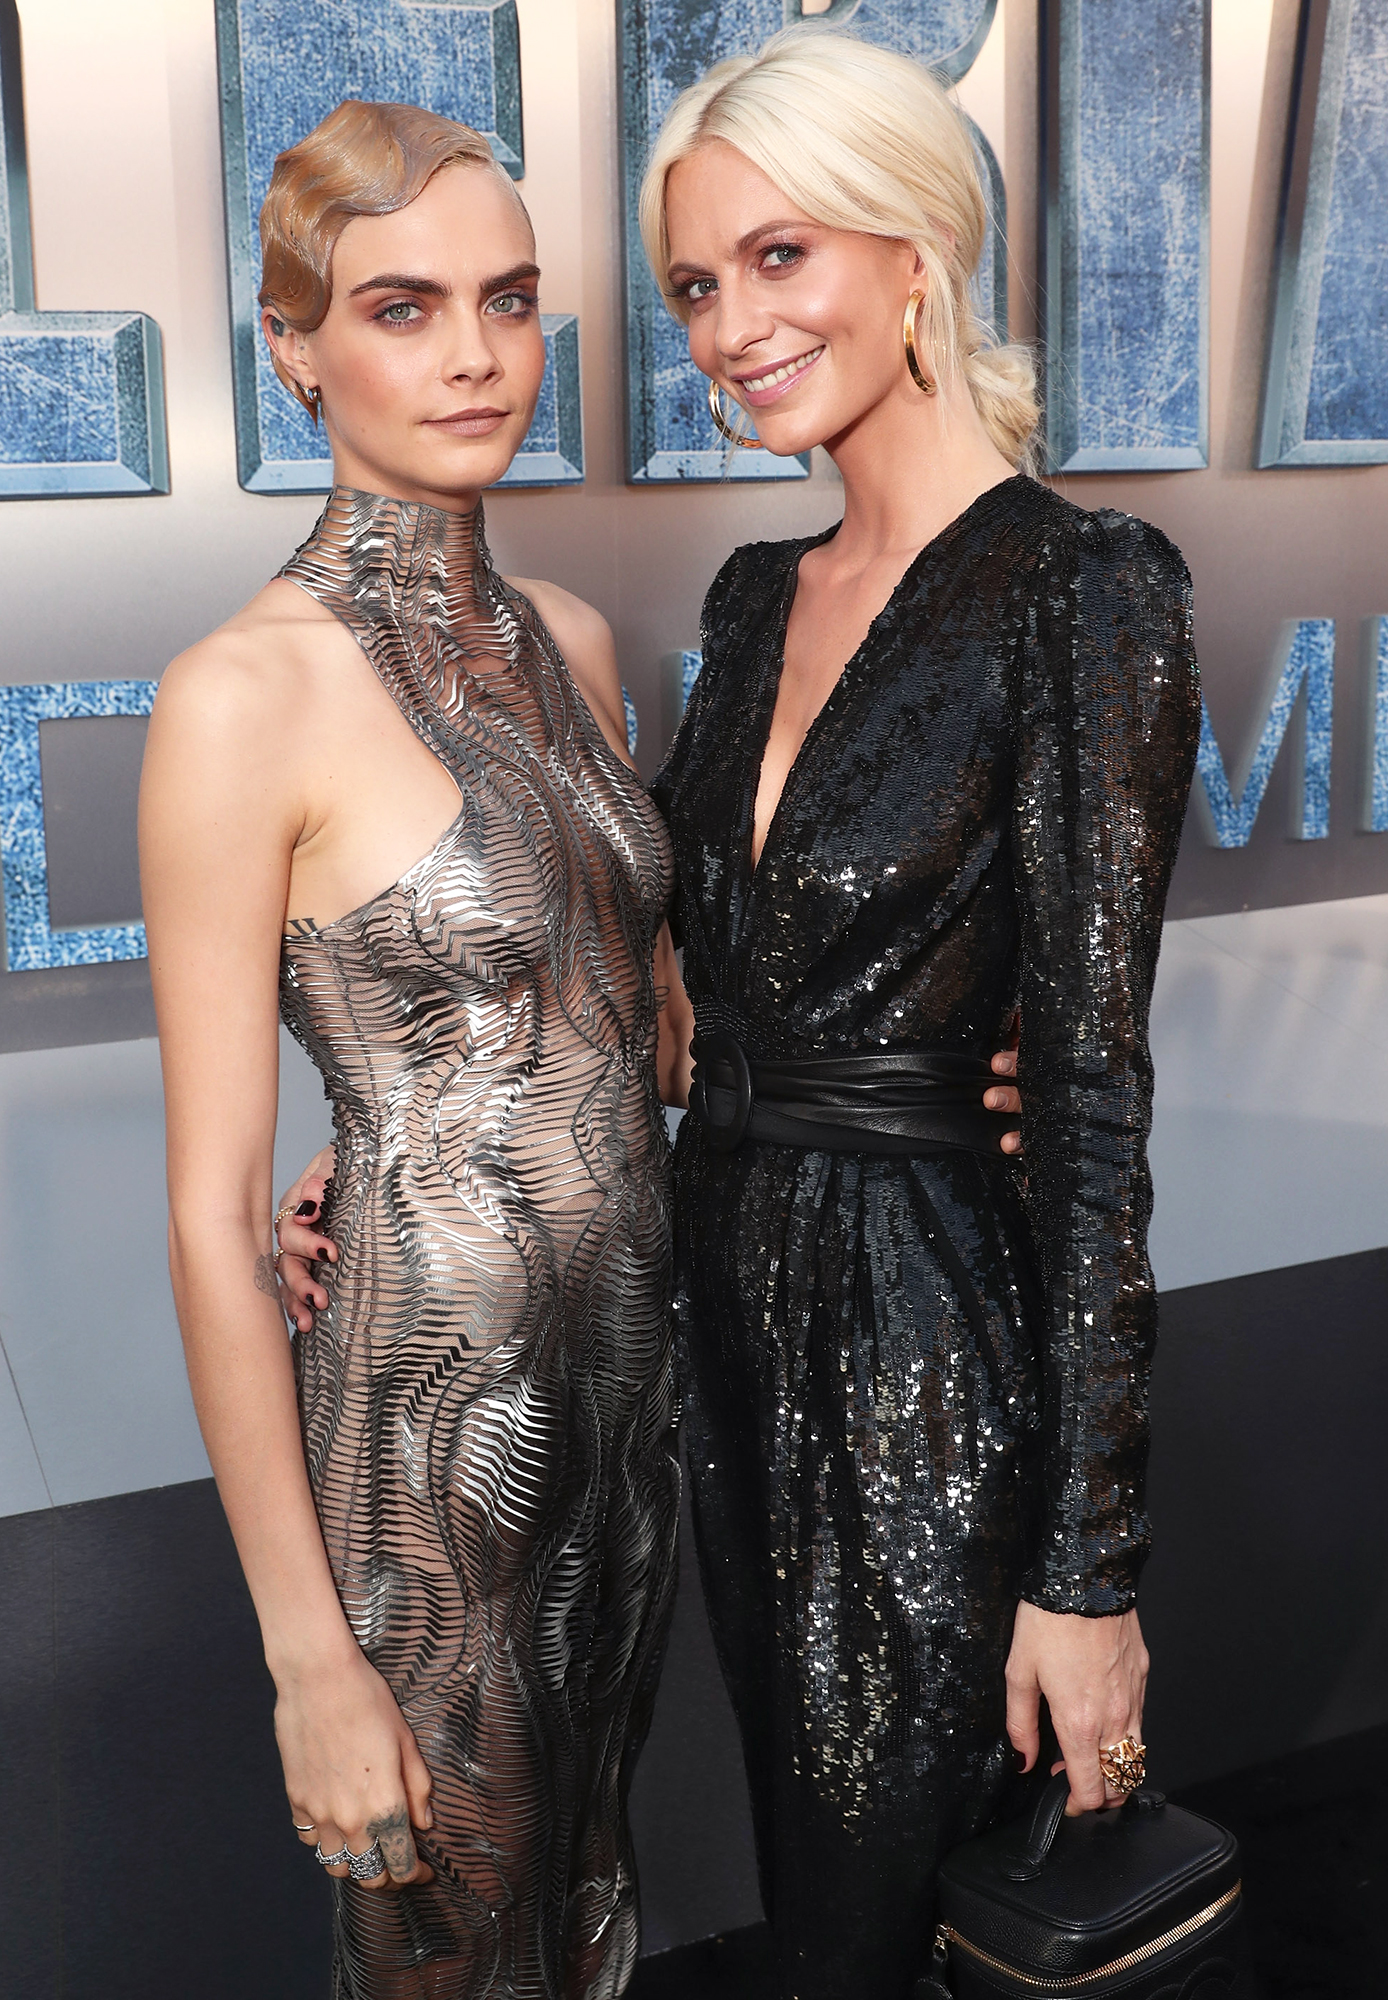 """Celebrity Siblings - The English sisters, both models and actresses, have nothing but love for each other. """"I am not jealous of her, unfortunately for you,"""" Poppy told Evening Standard of her youngest sister in May 2017."""